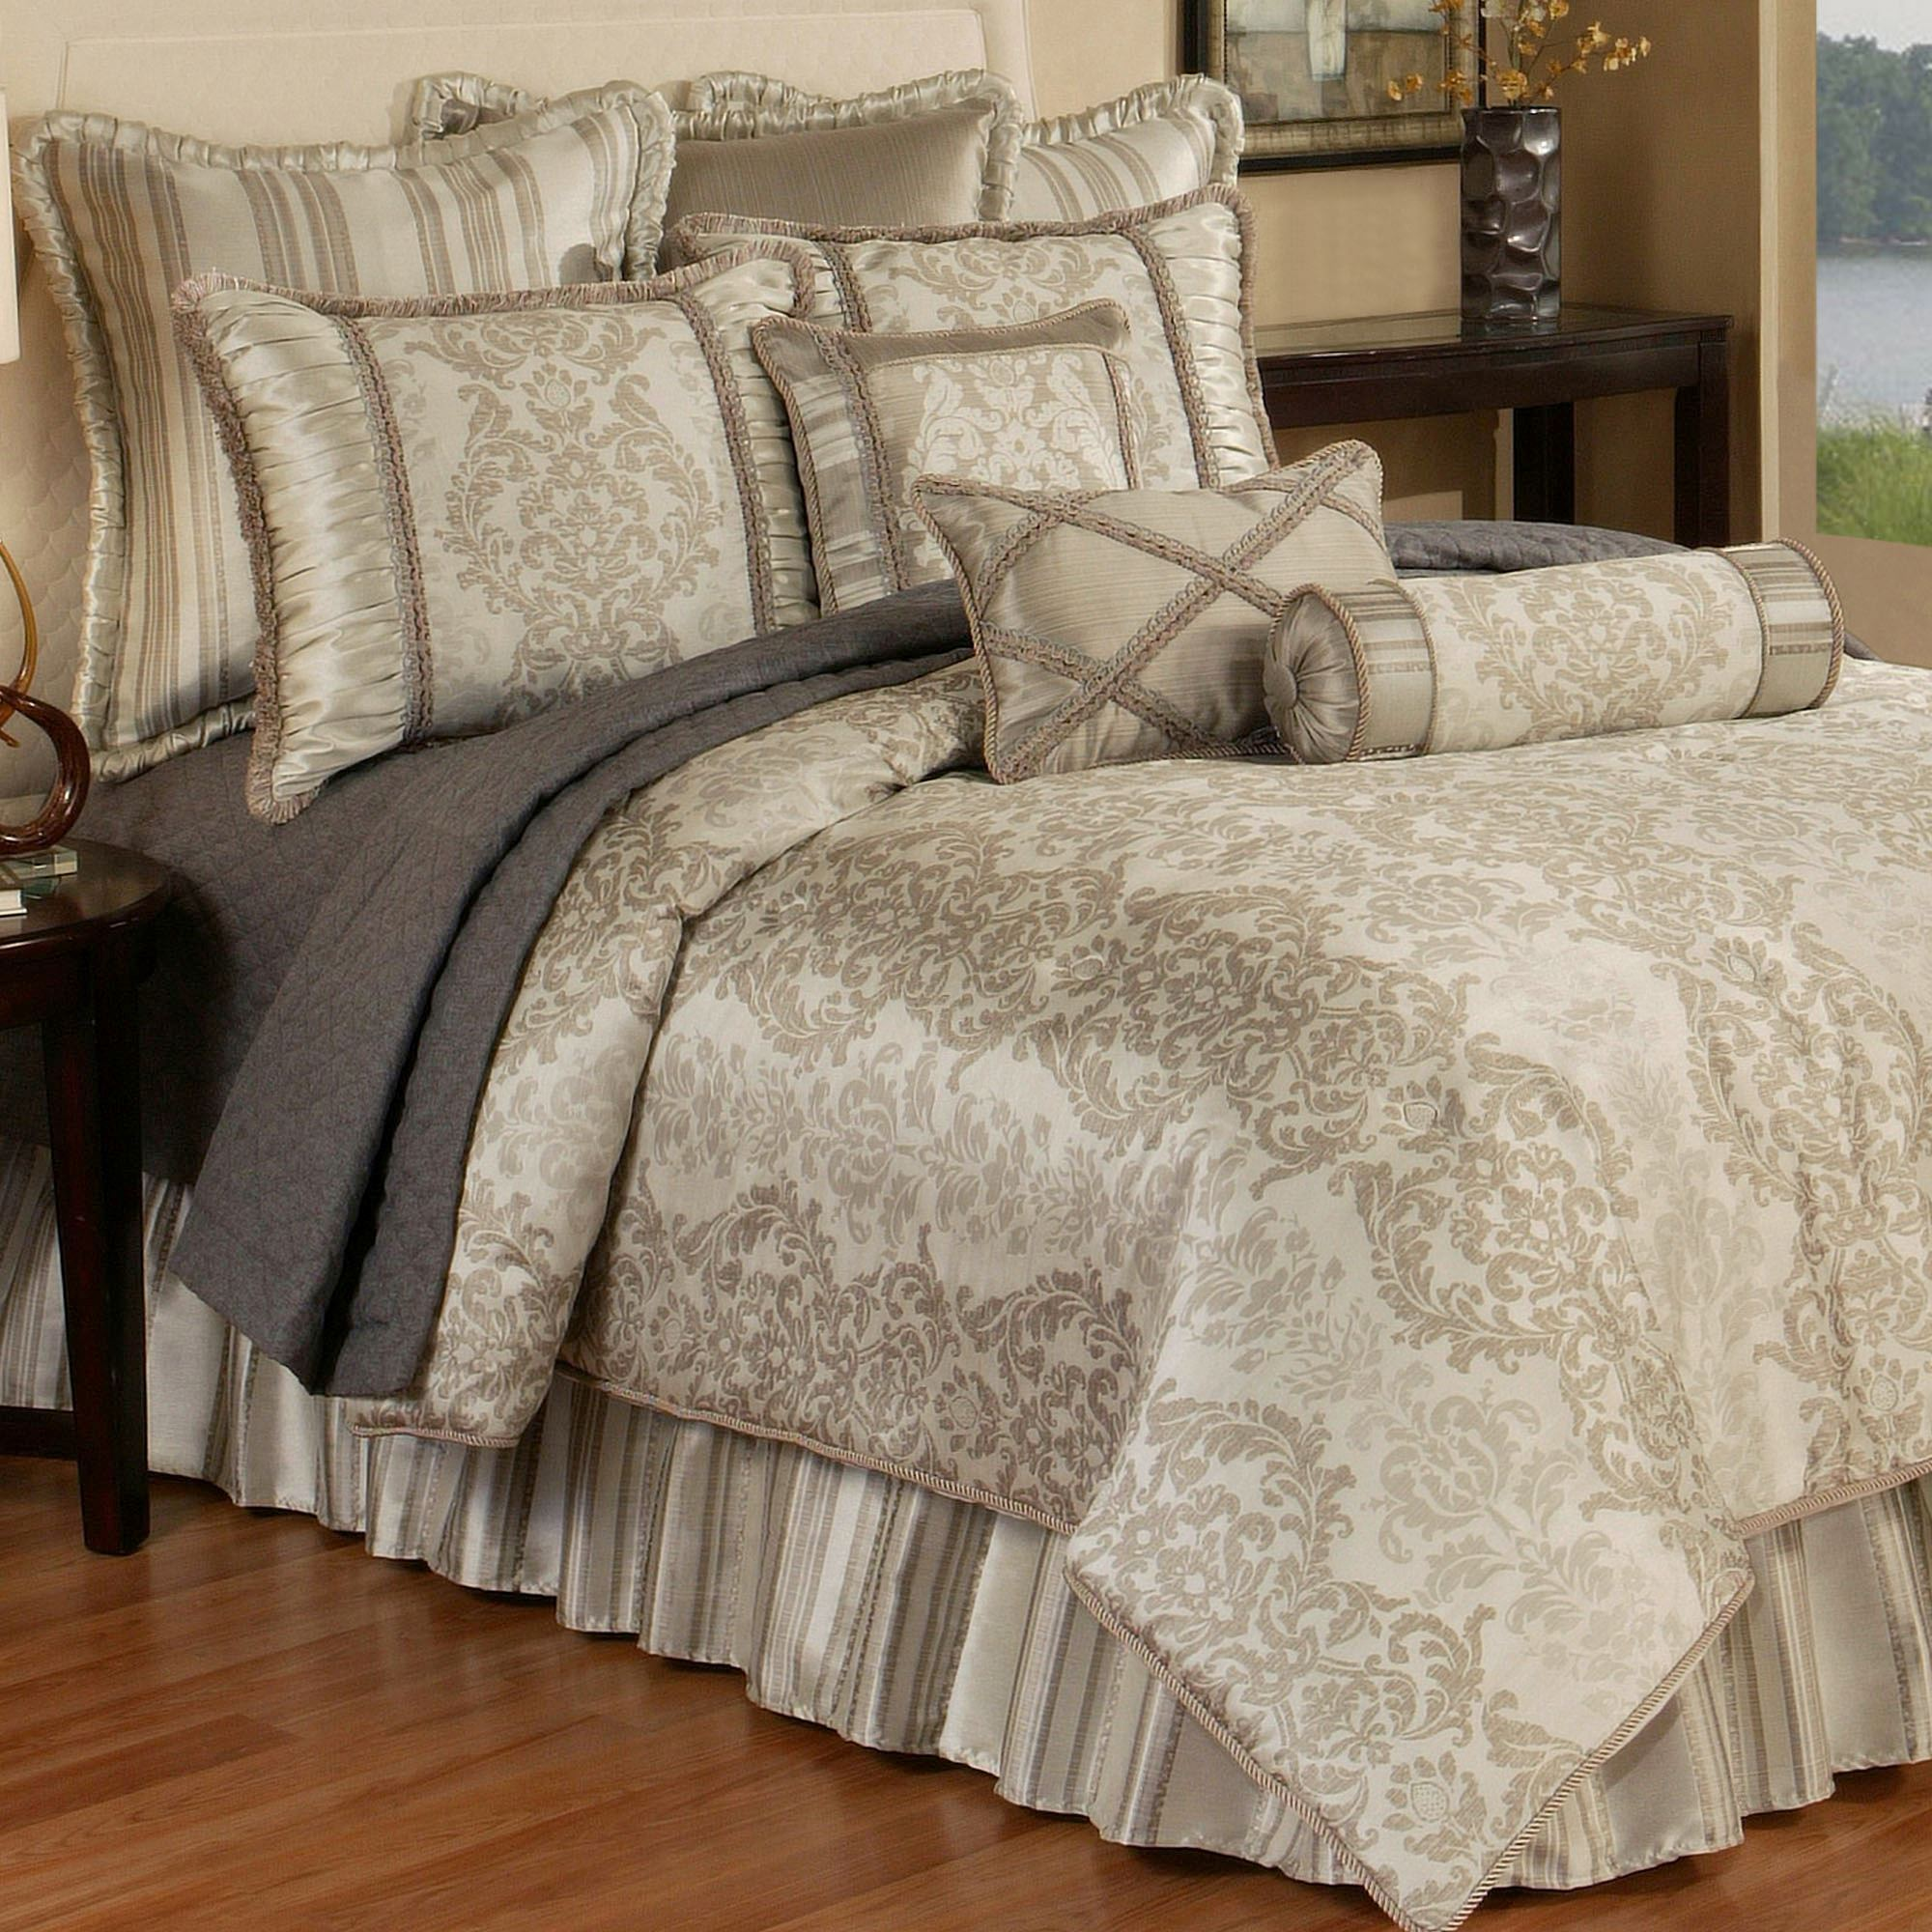 index kama embroidery set collections comforter bamboo forest bedding luxury